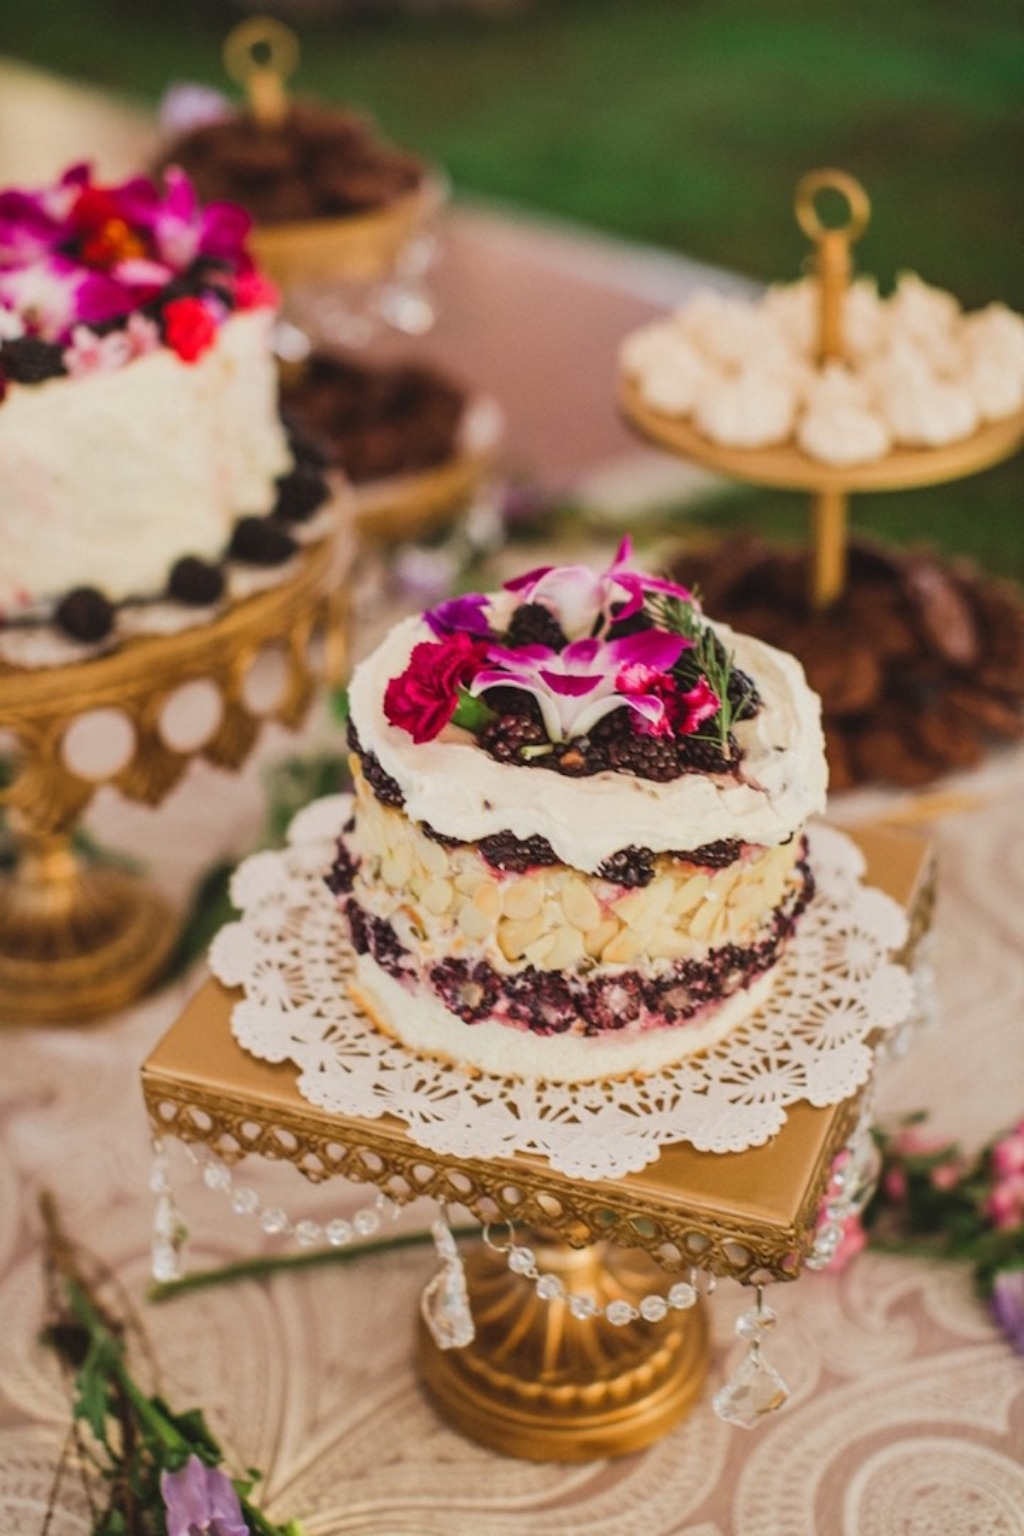 Southern Chic Charm accented with chandeliers... Dessert Stands you'll LOVE!